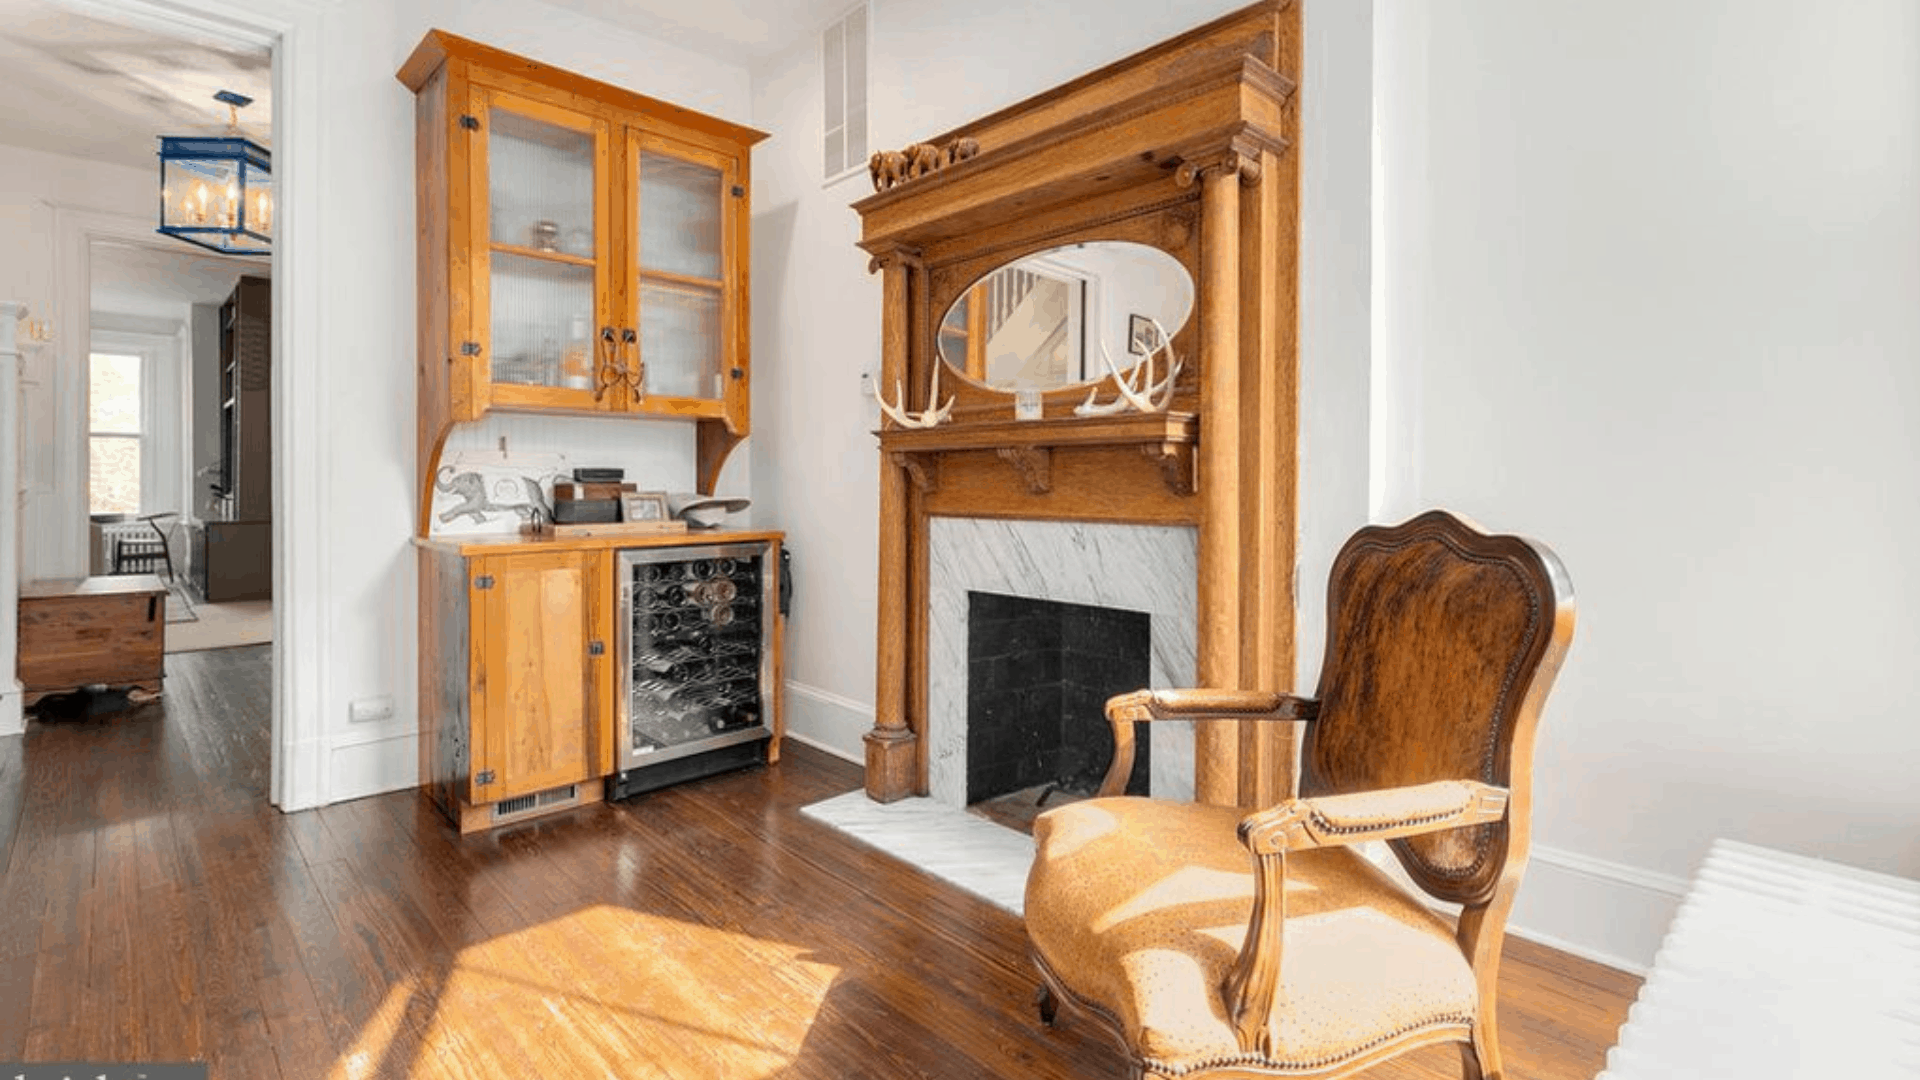 CUSTOMWOOD_115_8th_SE_bar_fireplace_1920x1080